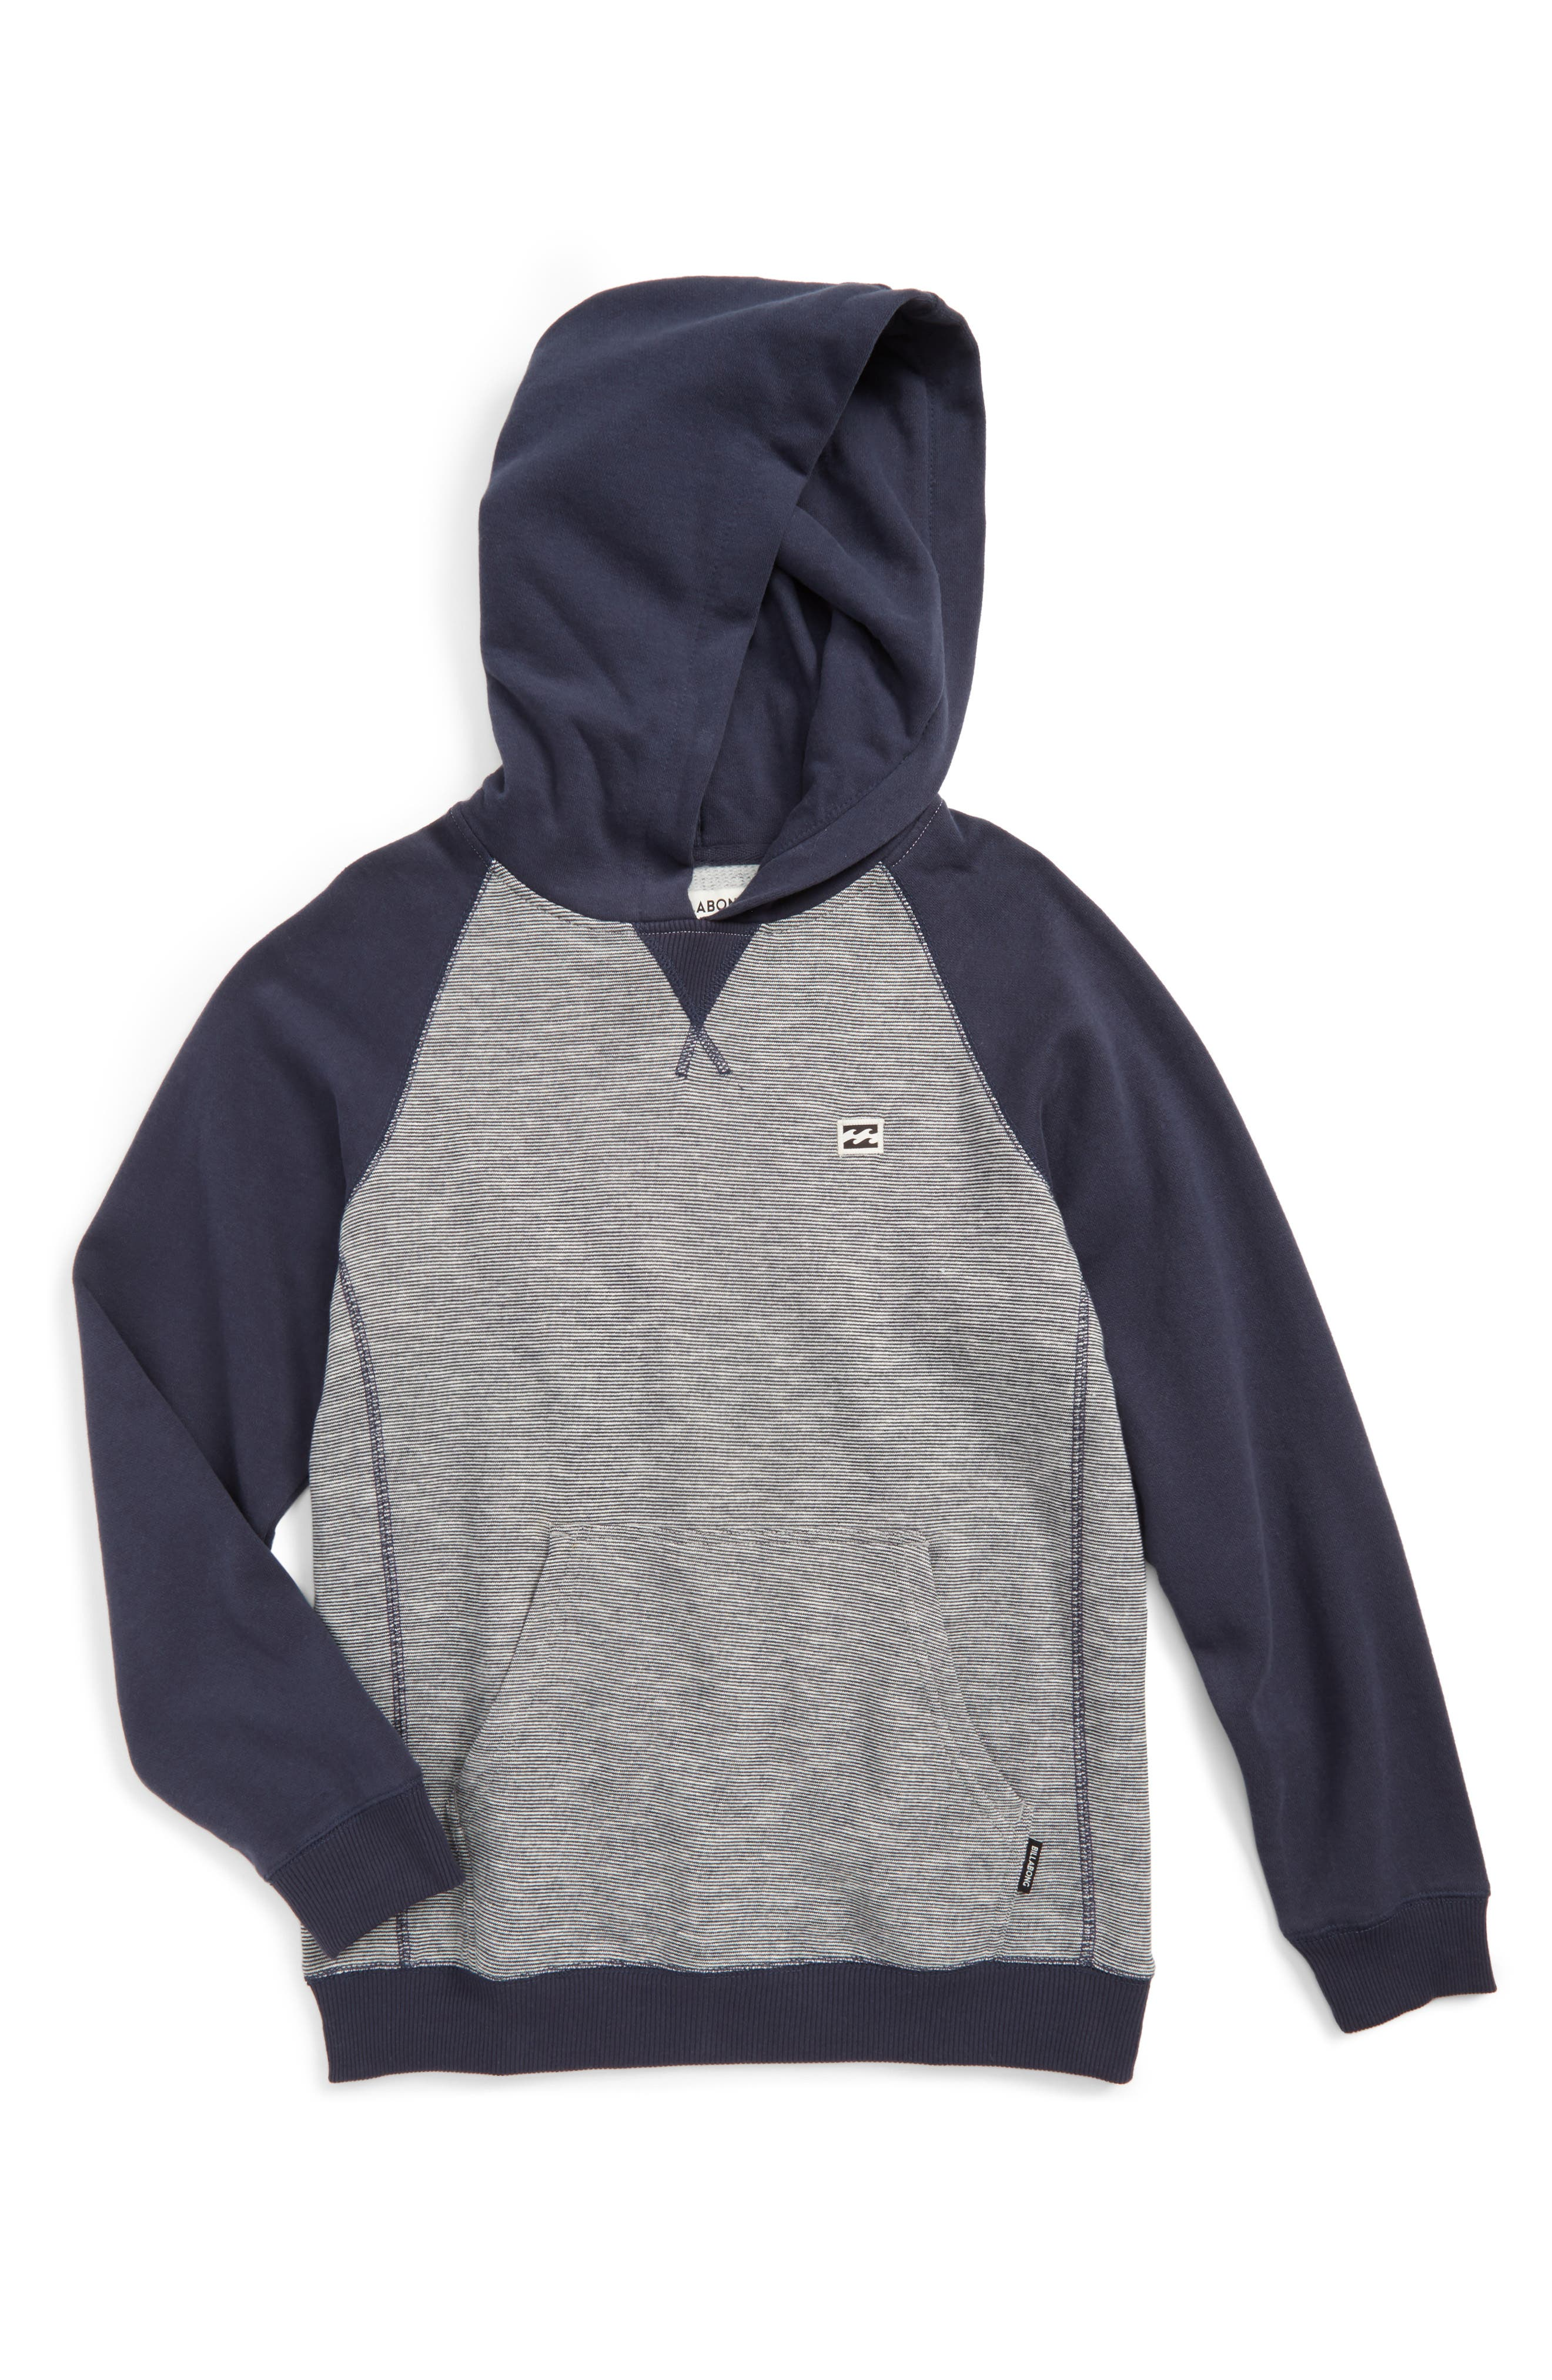 Alternate Image 1 Selected - Billabong Balance Pullover Hoodie (Big Boys)